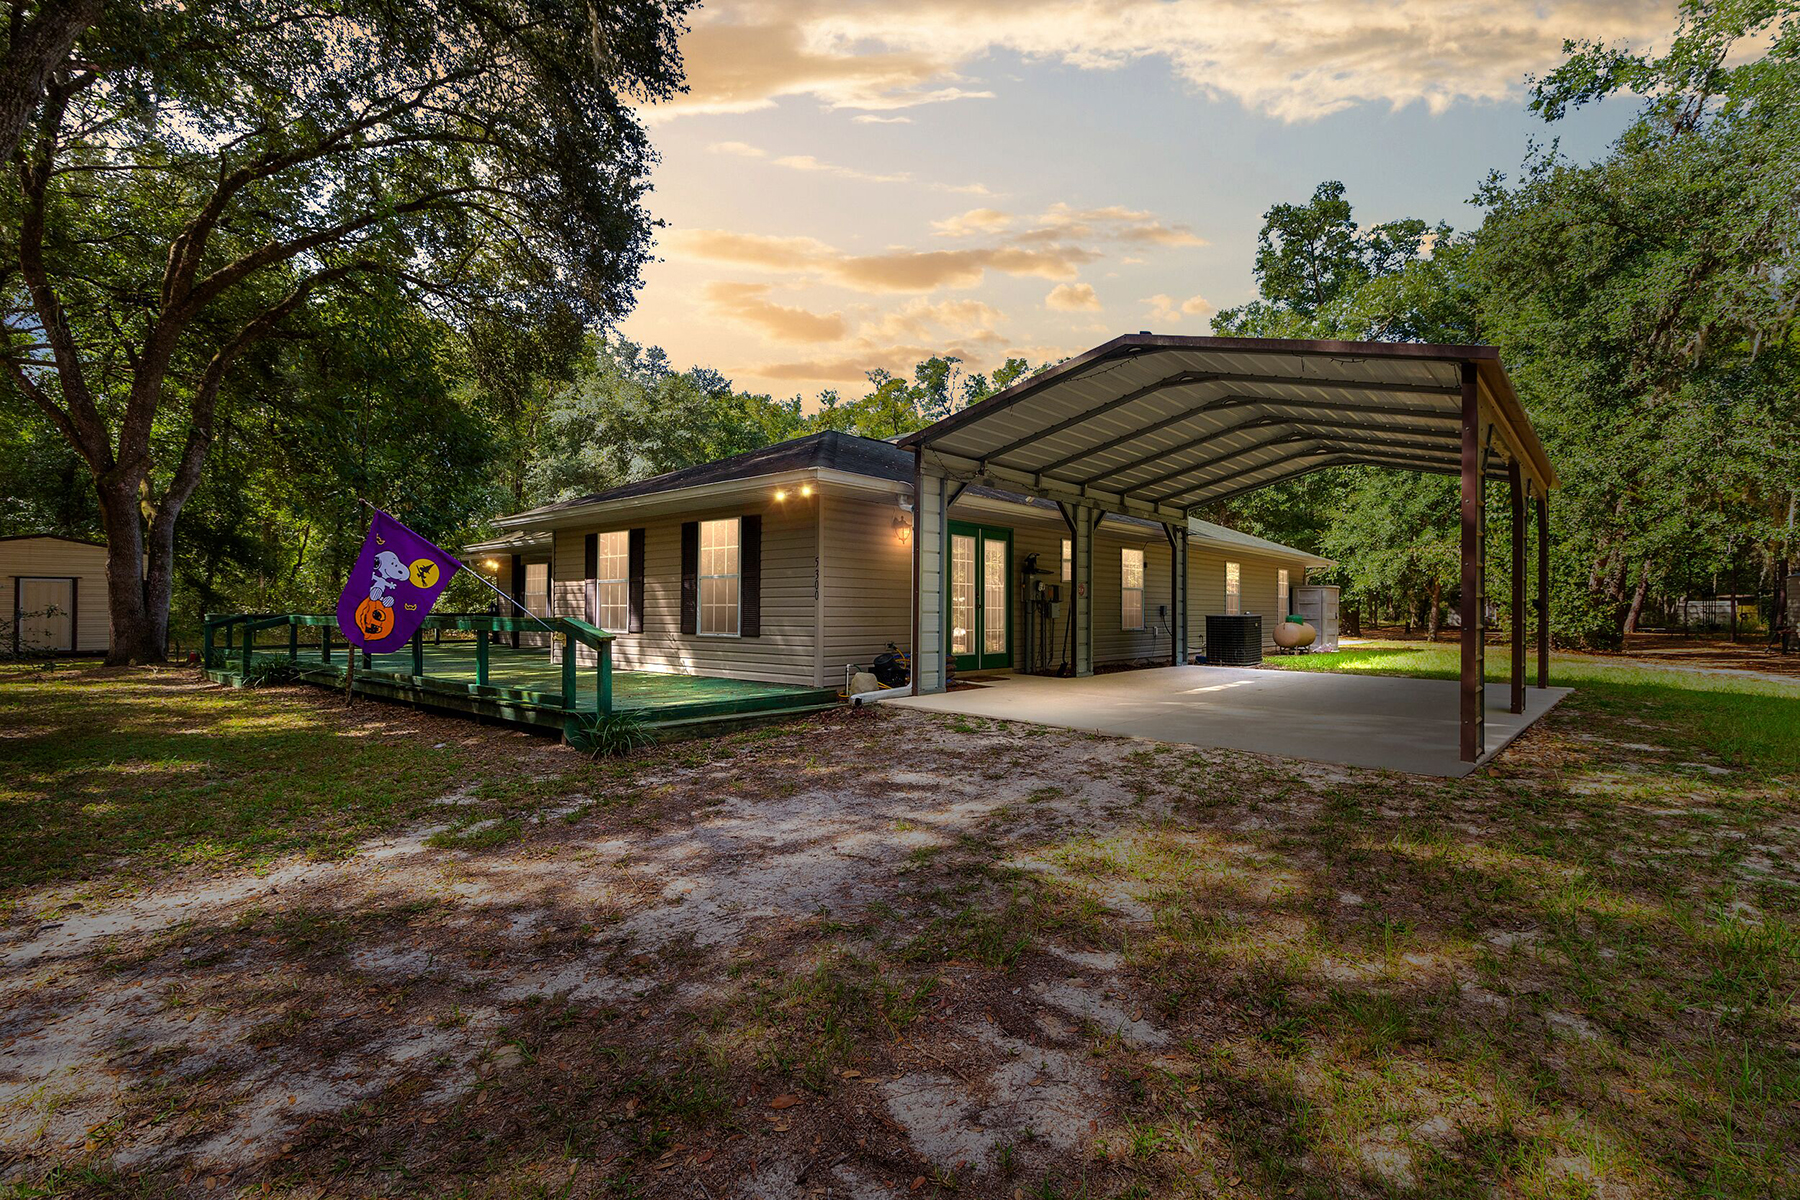 Single Family Homes for Sale at SILVER SPRINGS 5300 N Highway 314a, Silver Springs, Florida 34488 United States